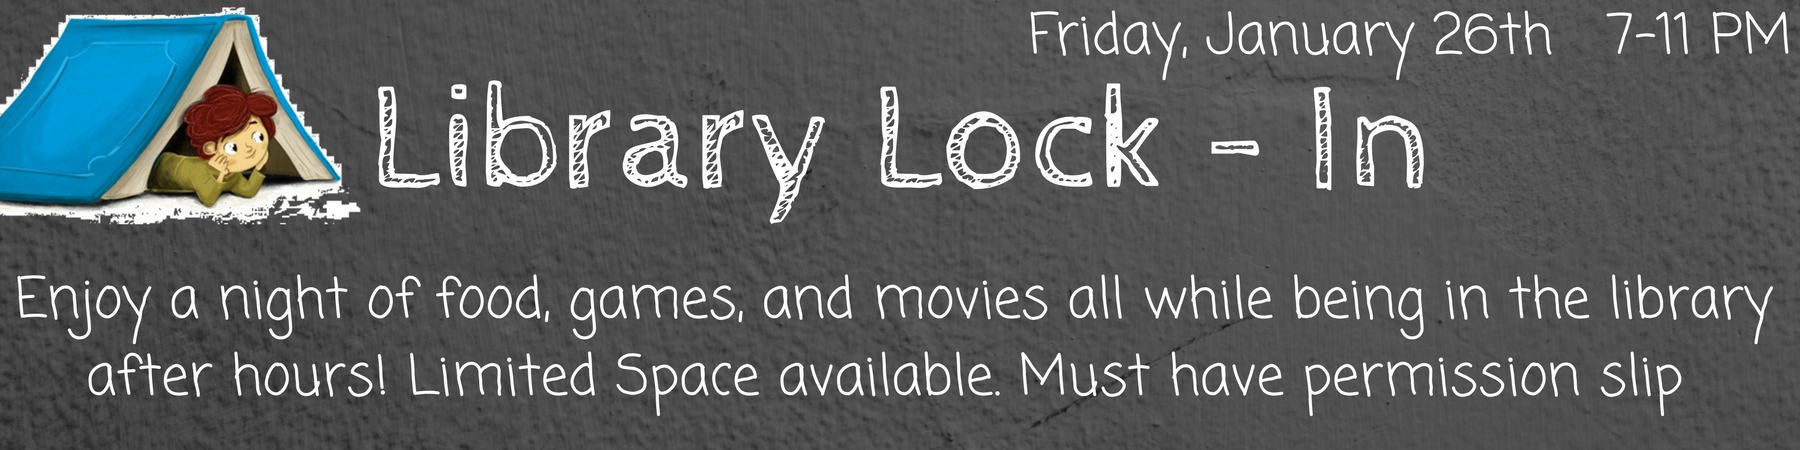 Library-Lock-In-4